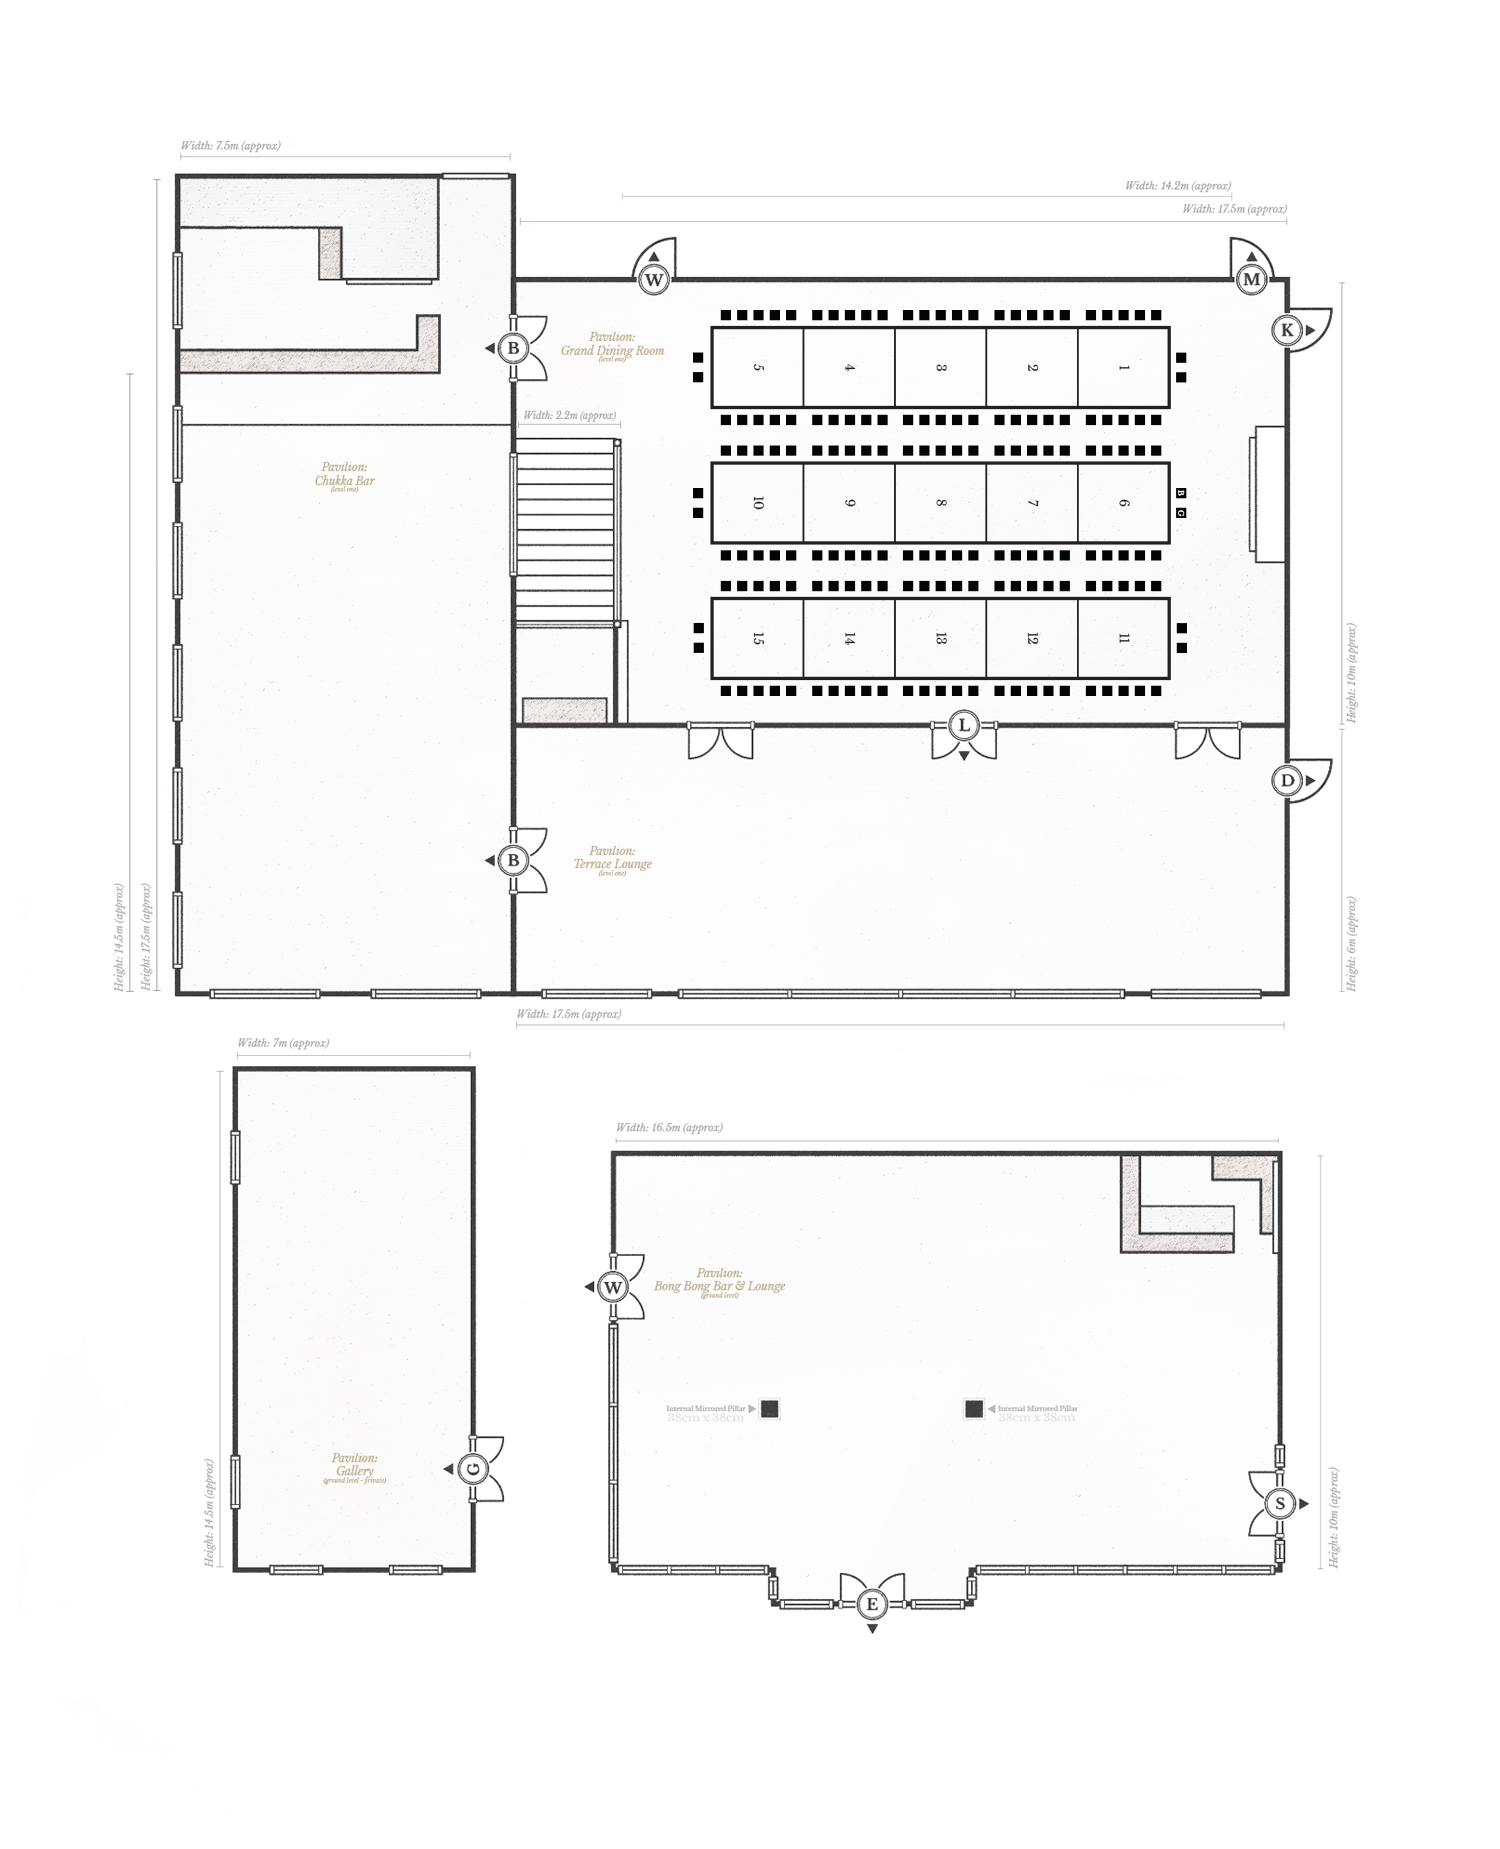 Hopewood-House---Pavilion---Grand-Dining-Room---3-Long-Tables-Layout.jpg